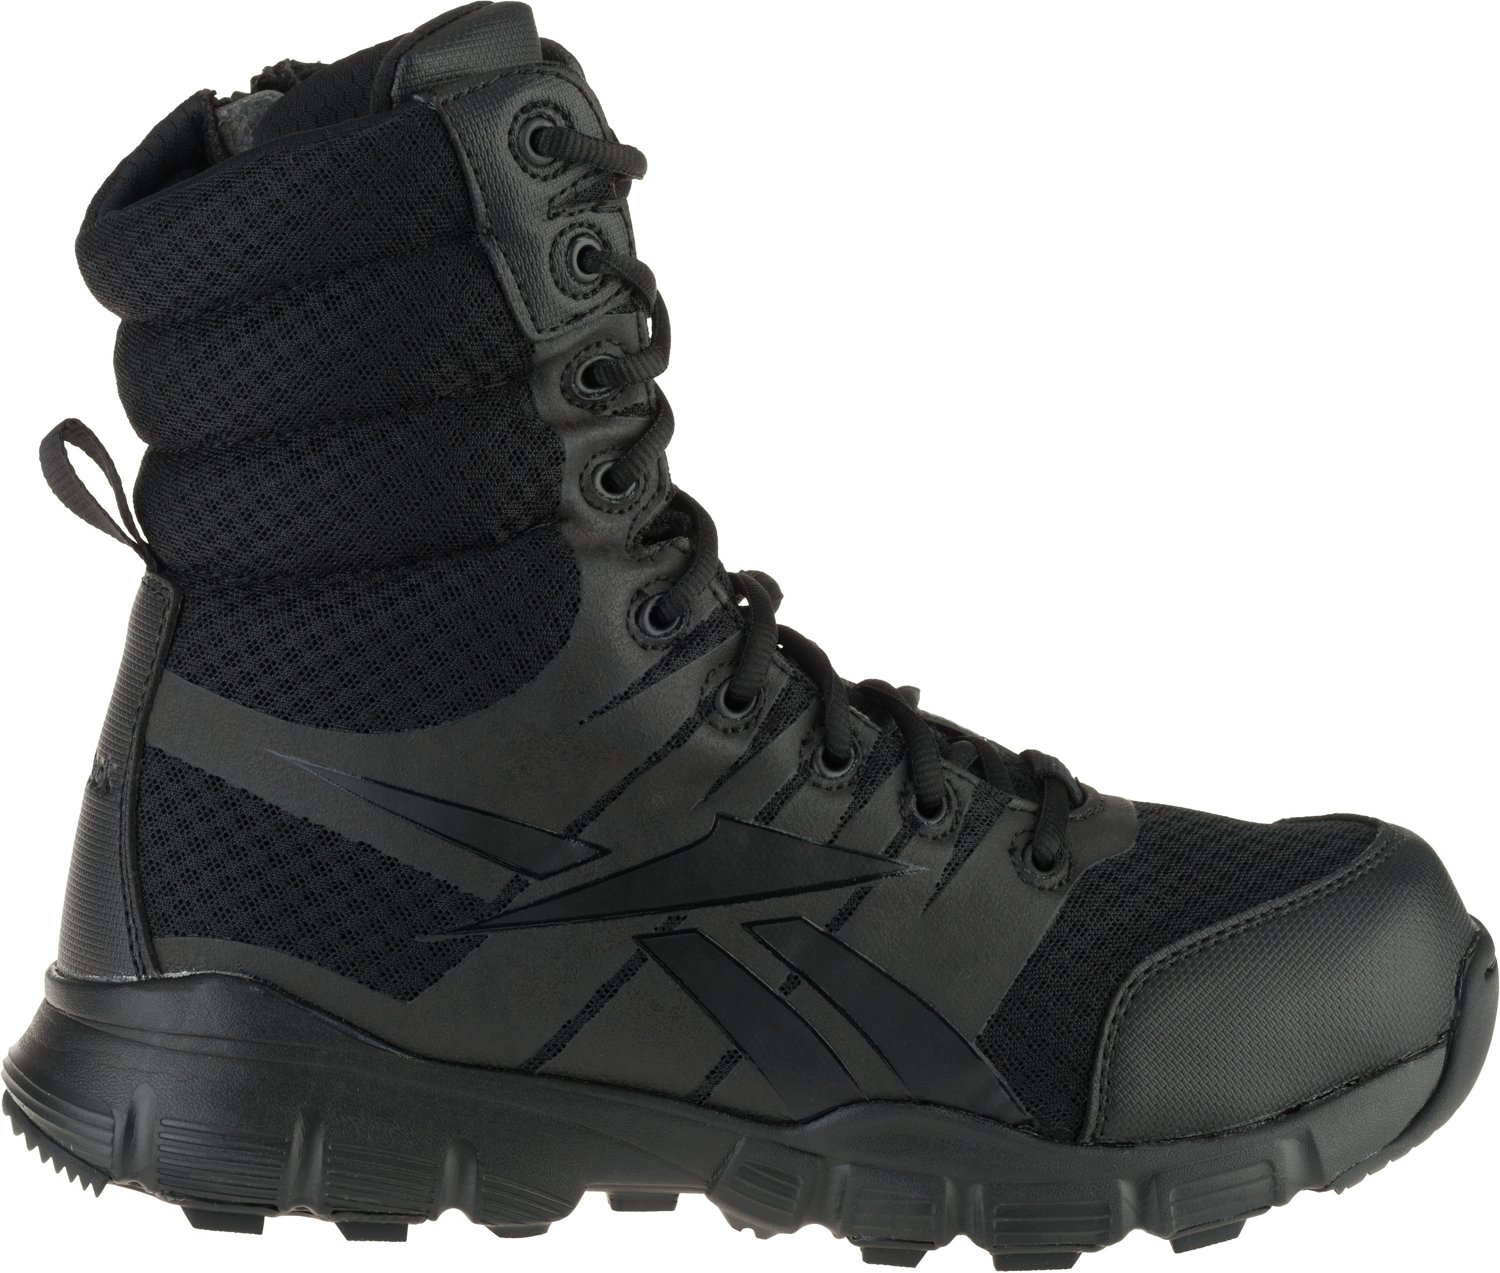 Display product reviews for Reebok Men s Dauntless Ultralight Tactical Boots af1c20416